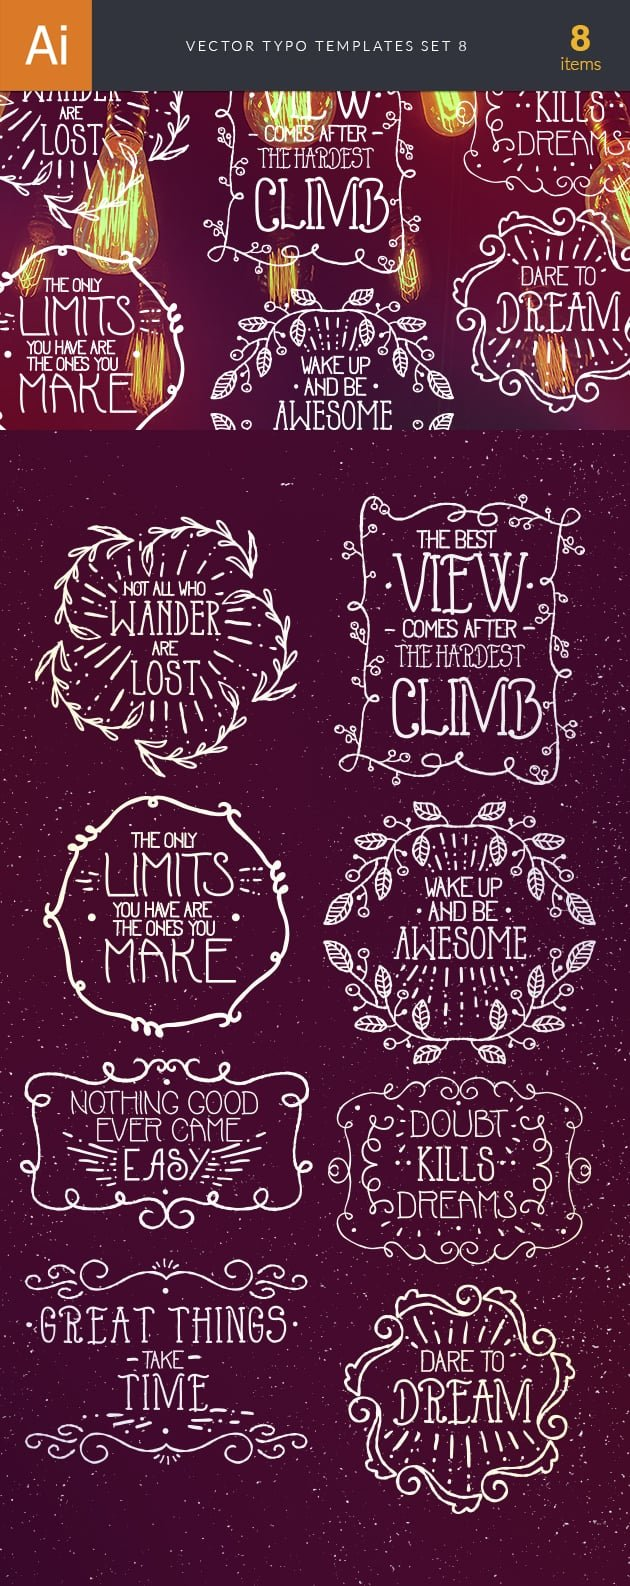 Vector Typography Templates Set 8 2